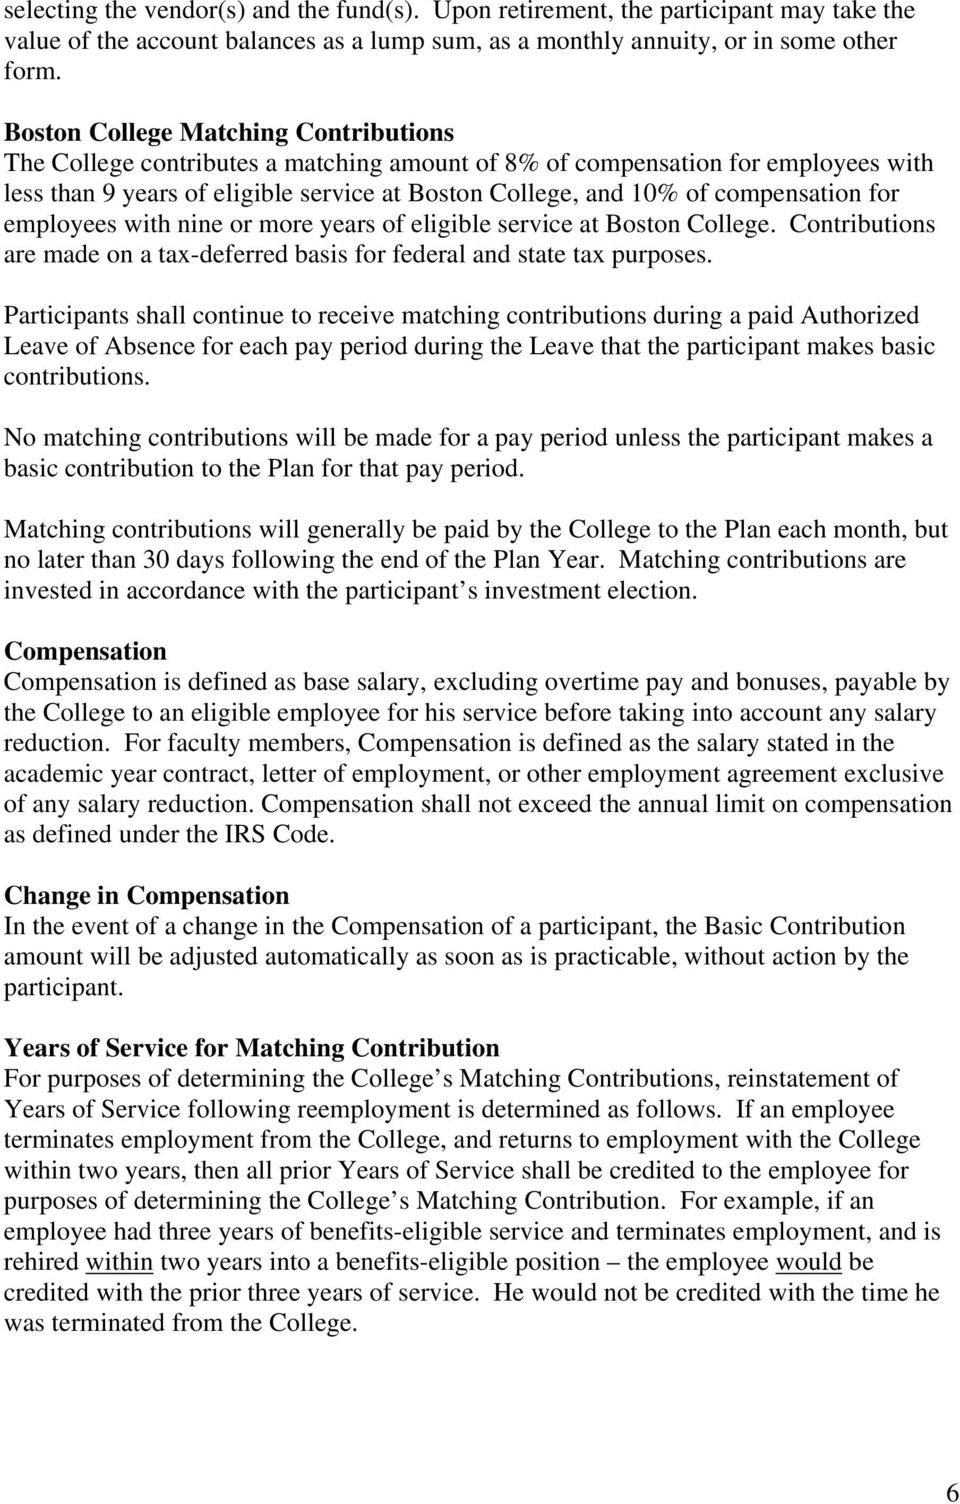 compensation for employees with nine or more years of eligible service at Boston College. Contributions are made on a tax-deferred basis for federal and state tax purposes.